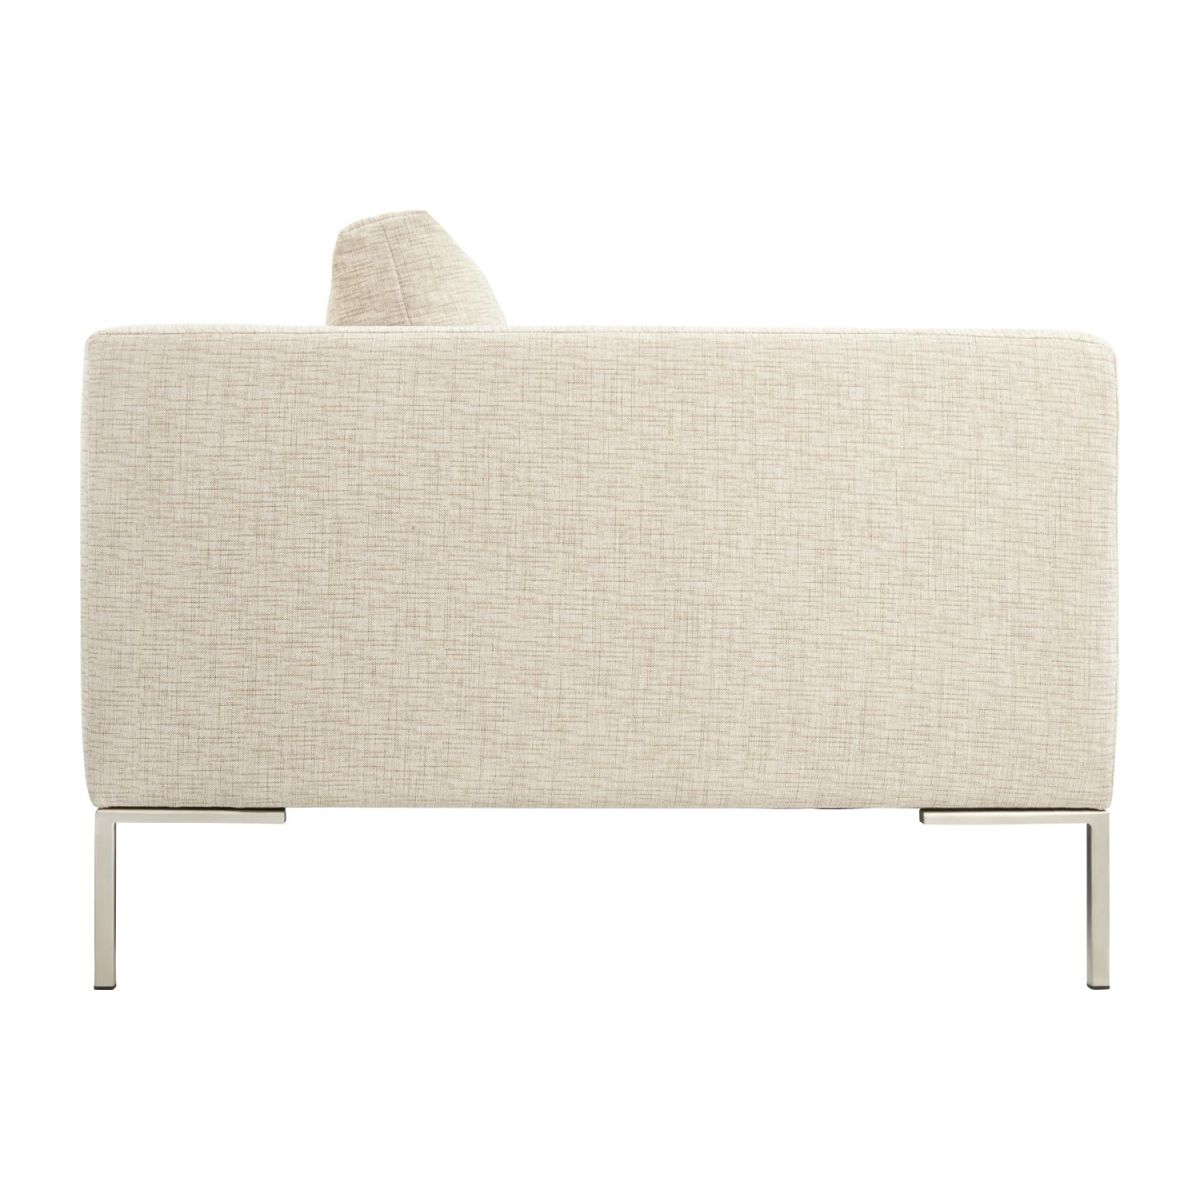 3 seater sofa in Ancio fabric, nature n°6